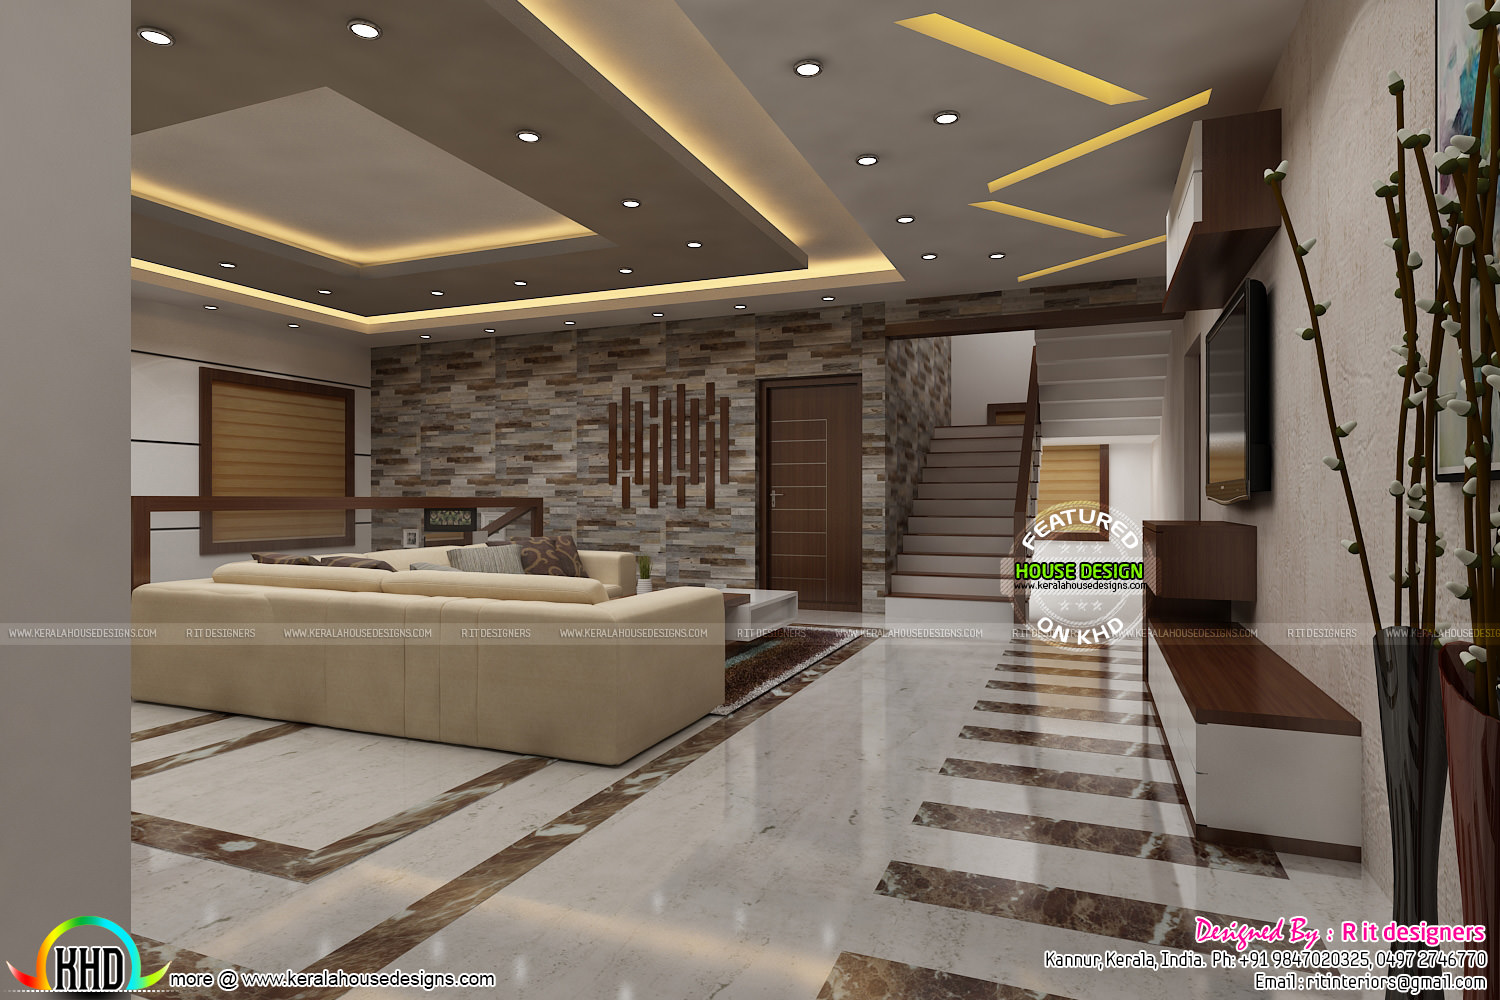 Most modern kerala living room interior kerala home for Modern house design inside